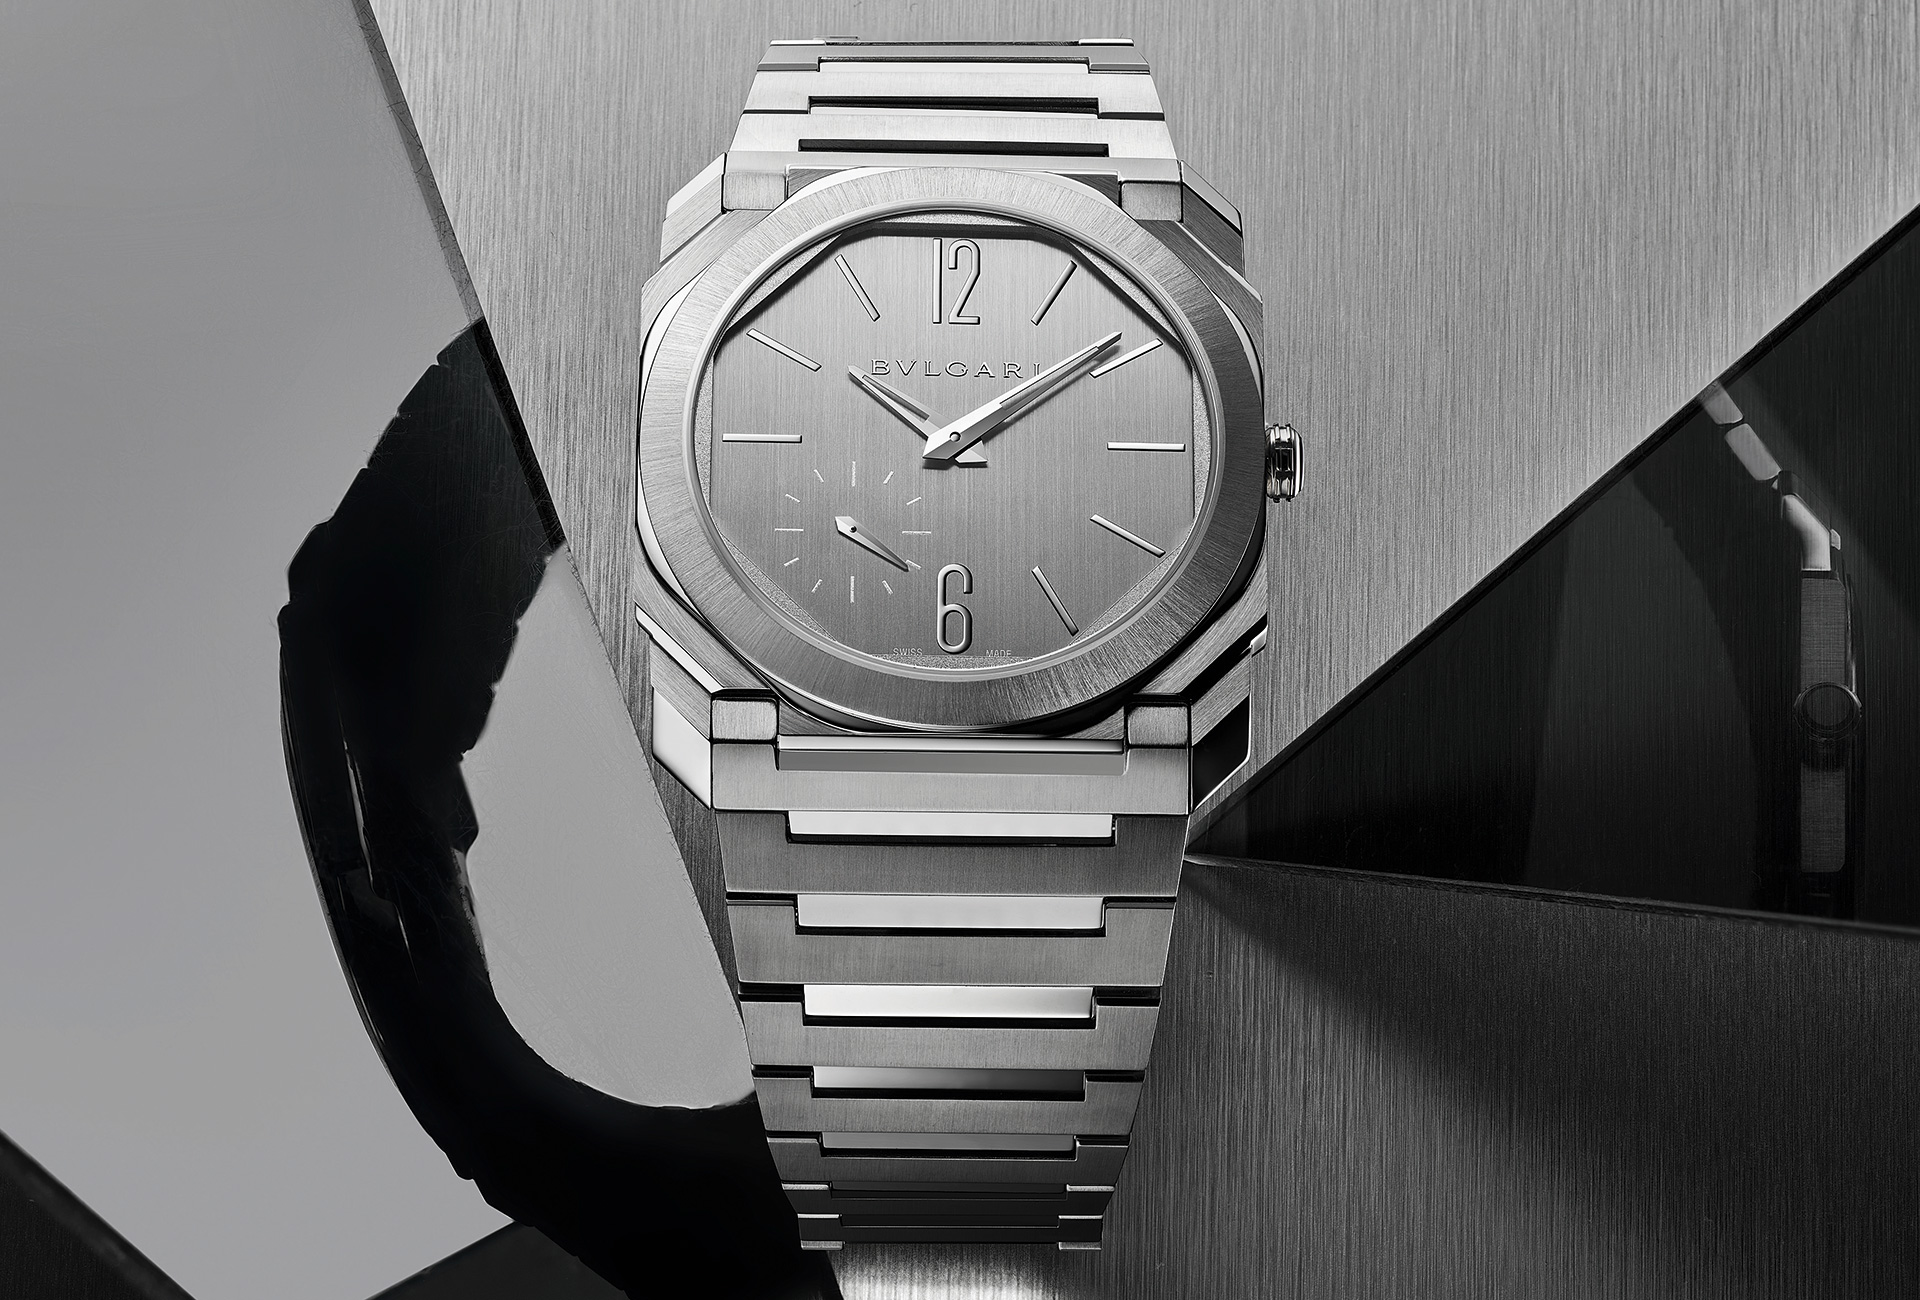 Bulgari new The Octo Finissimo Perpetual Calendar, in platinum with platinum bracelet (Watches & Wonders 2021)